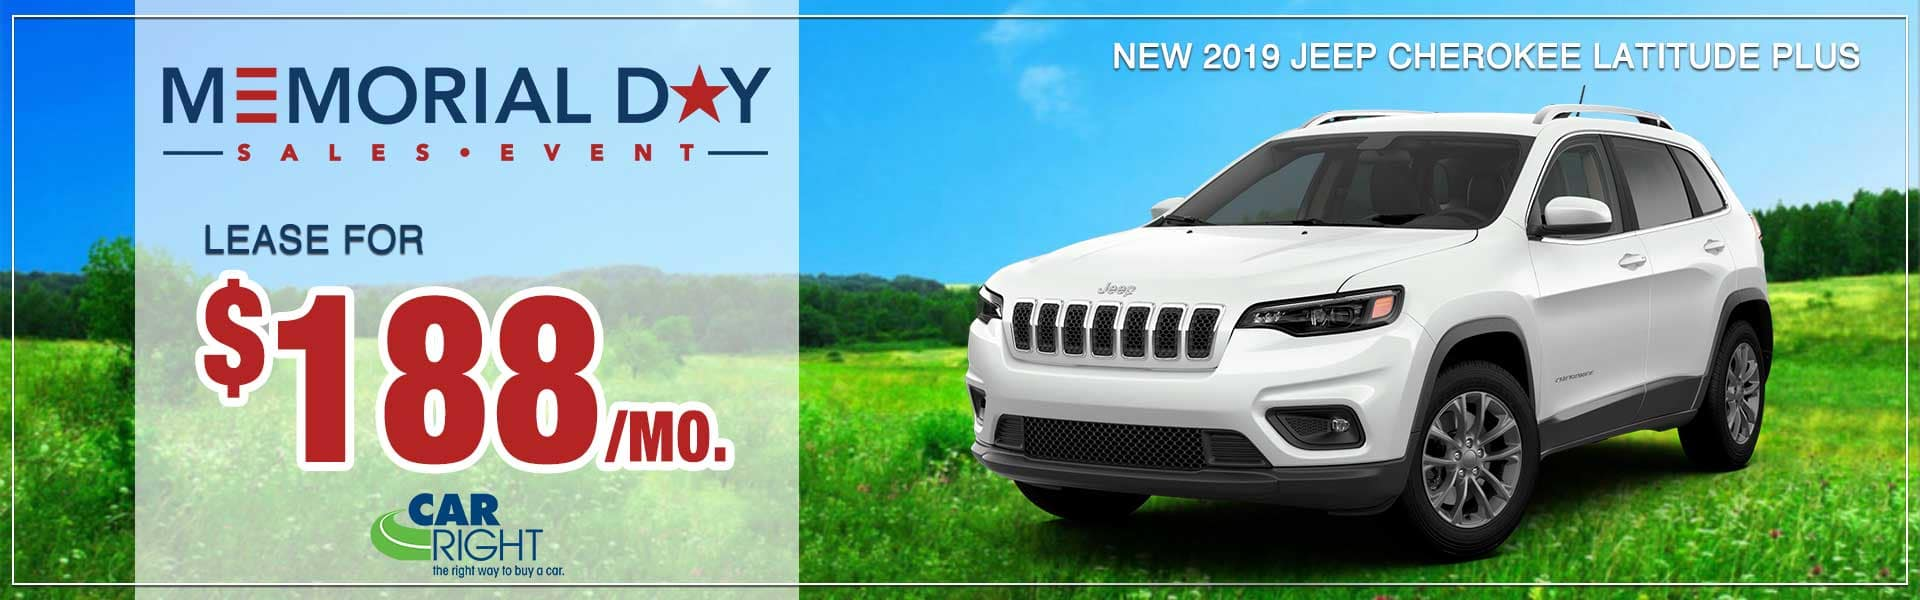 K3578-2019-jeep-cherokee-latitude-plus-600x400 Jeep celebration event Chrysler Pacifica blockbuster sales event dodge performance days bigger things sales event Memorial Day sales event carright moon township Pittsburgh new vehicle specials lease specials